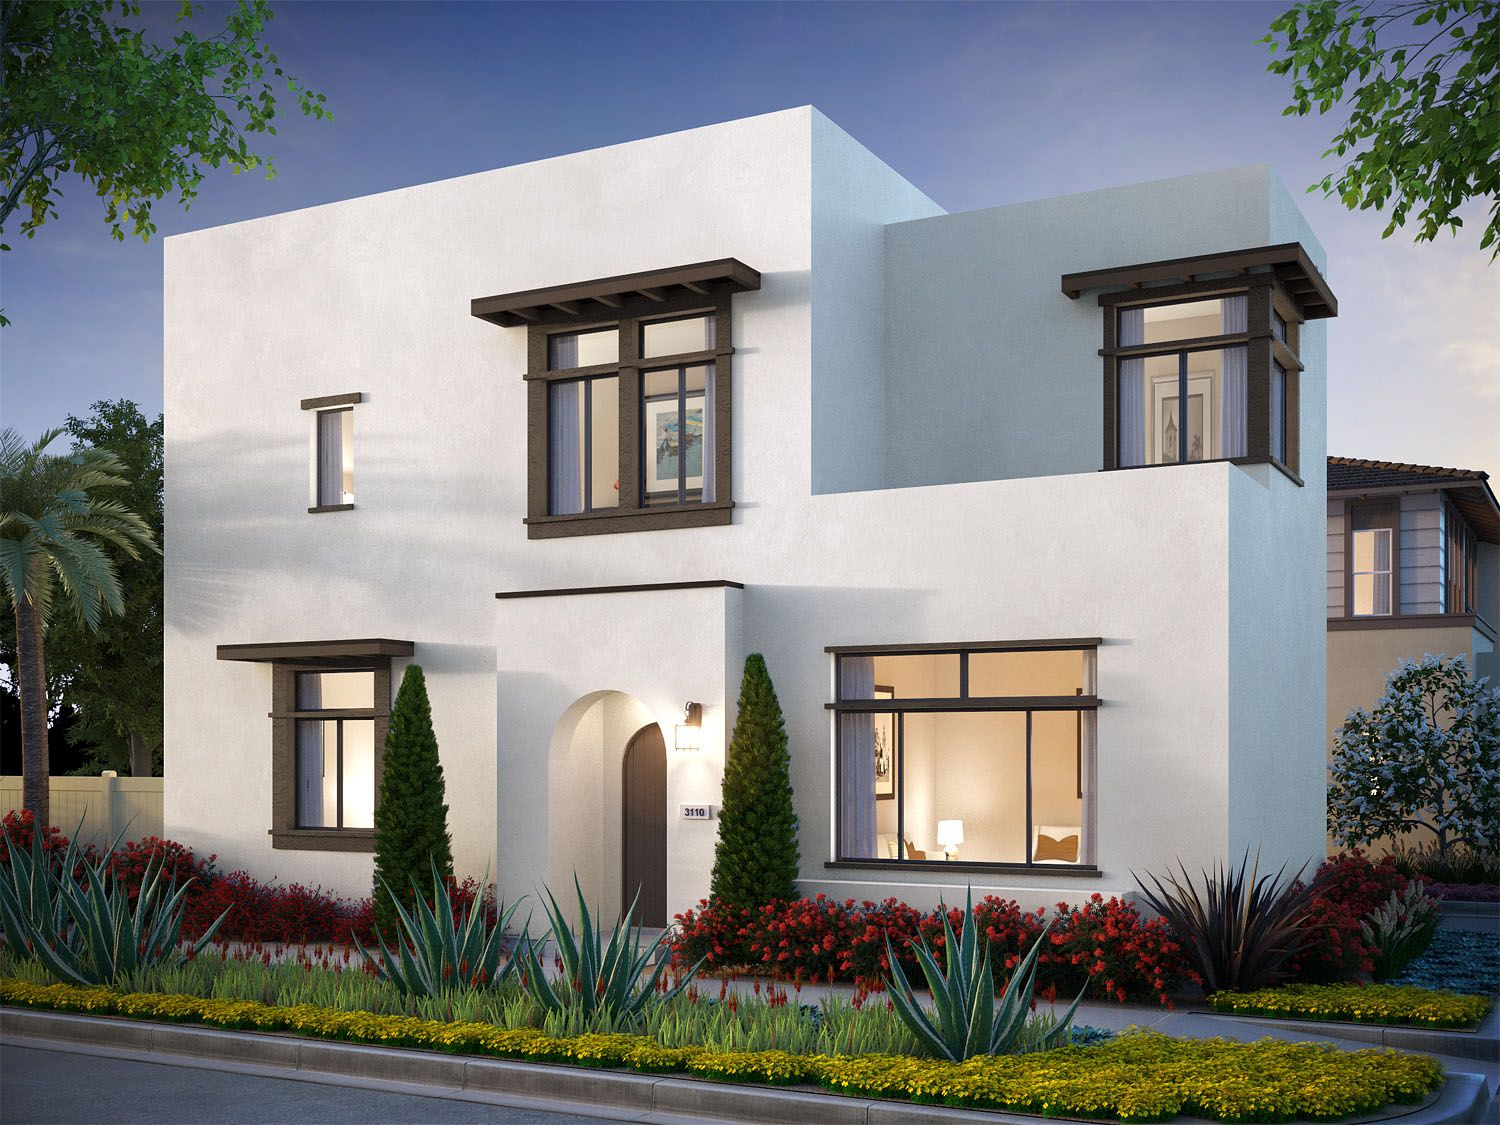 Inspired By Irving Gill Spanish Revival Architecture Residential Architecture Architecture